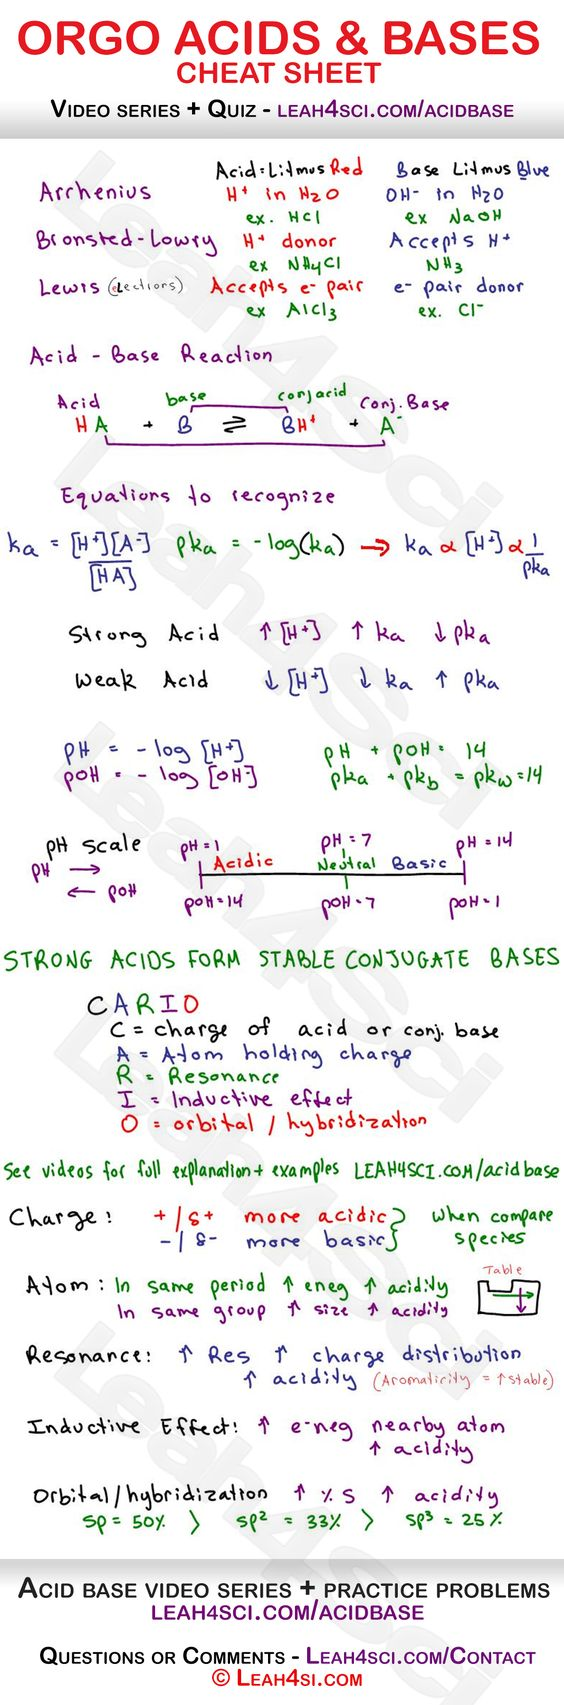 Acids and Bases in Organic Chemistry - Arrhenius, Bronsted-Lowry and Lewis acids and bases, reactions, acid/base strength, pH to pKa relationship and more